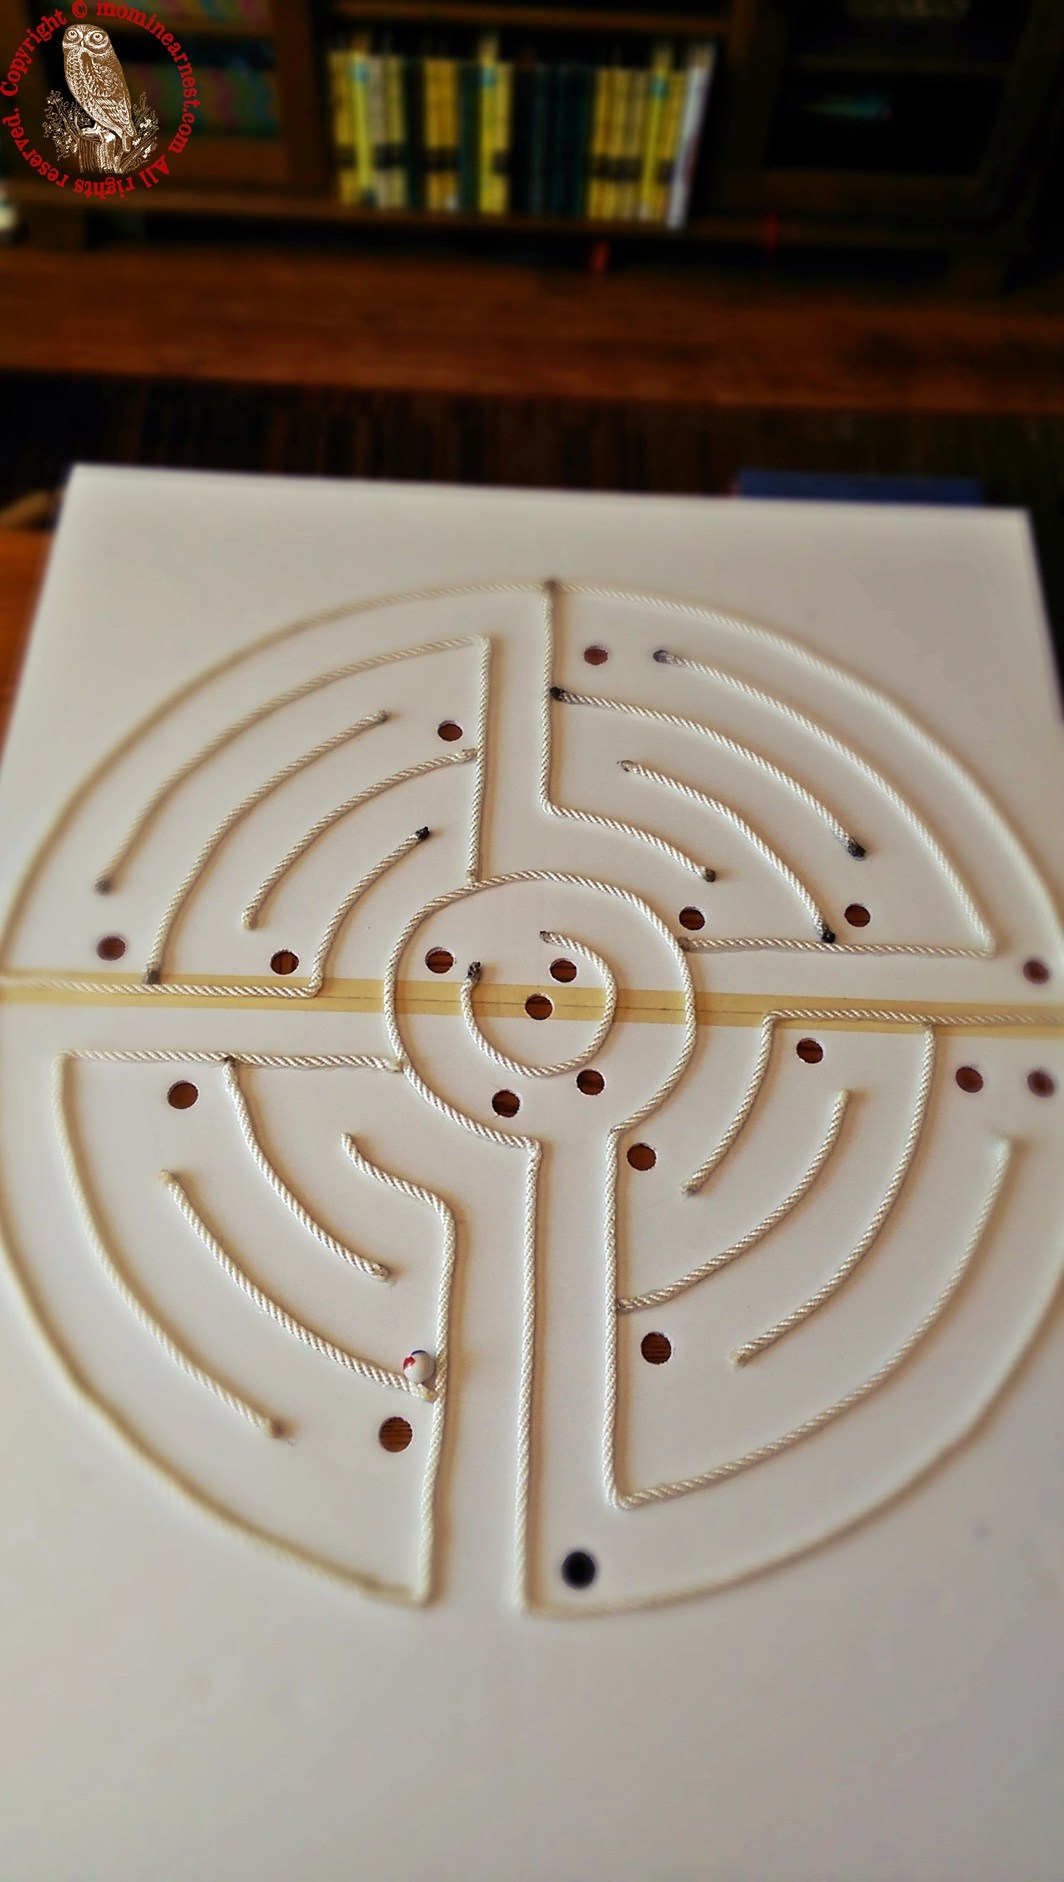 completed labyrinth